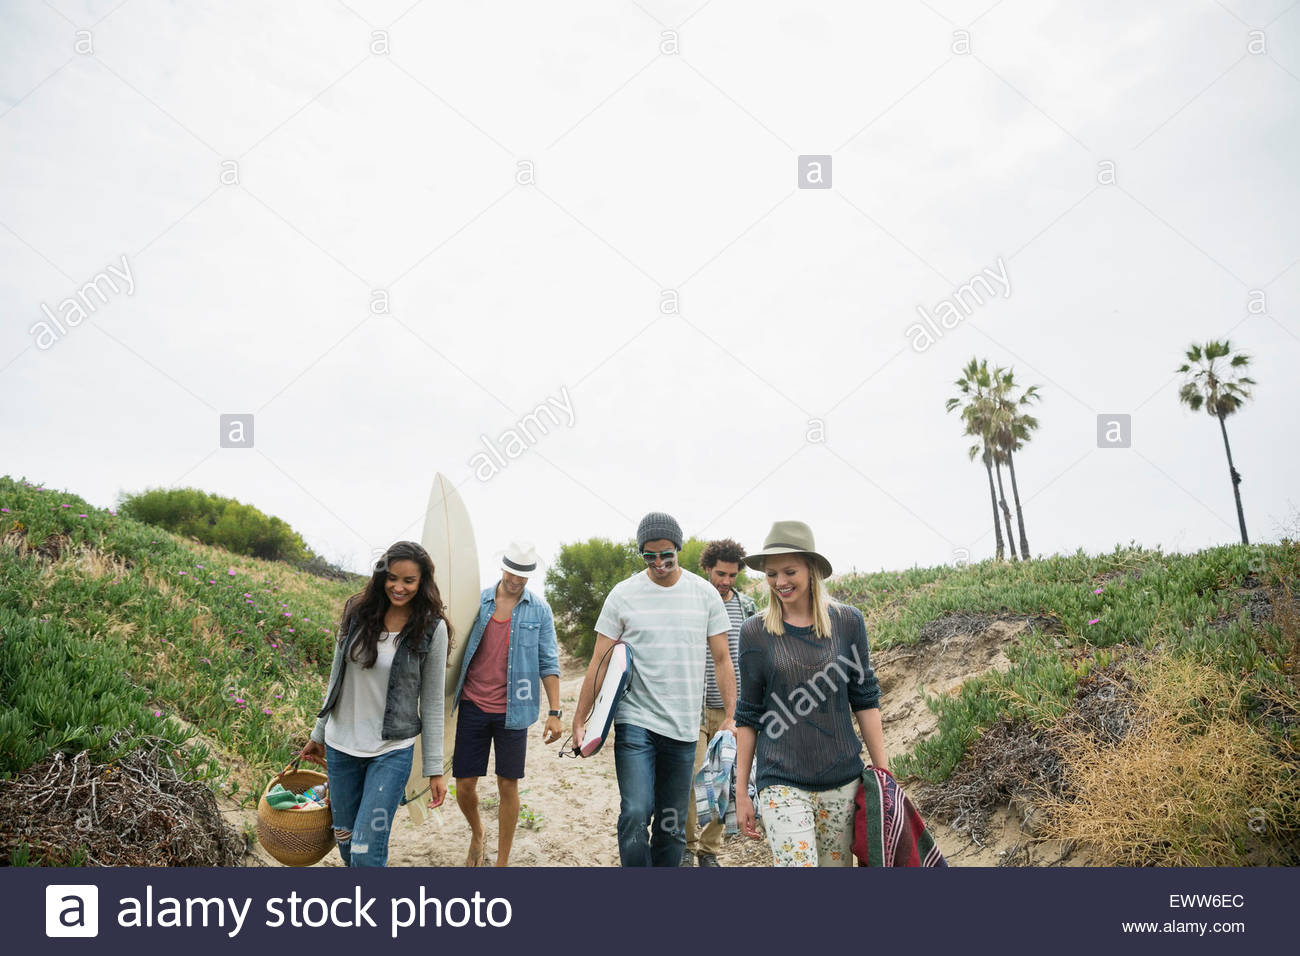 Friends carrying surfboard and picnic items beach path - Stock Image